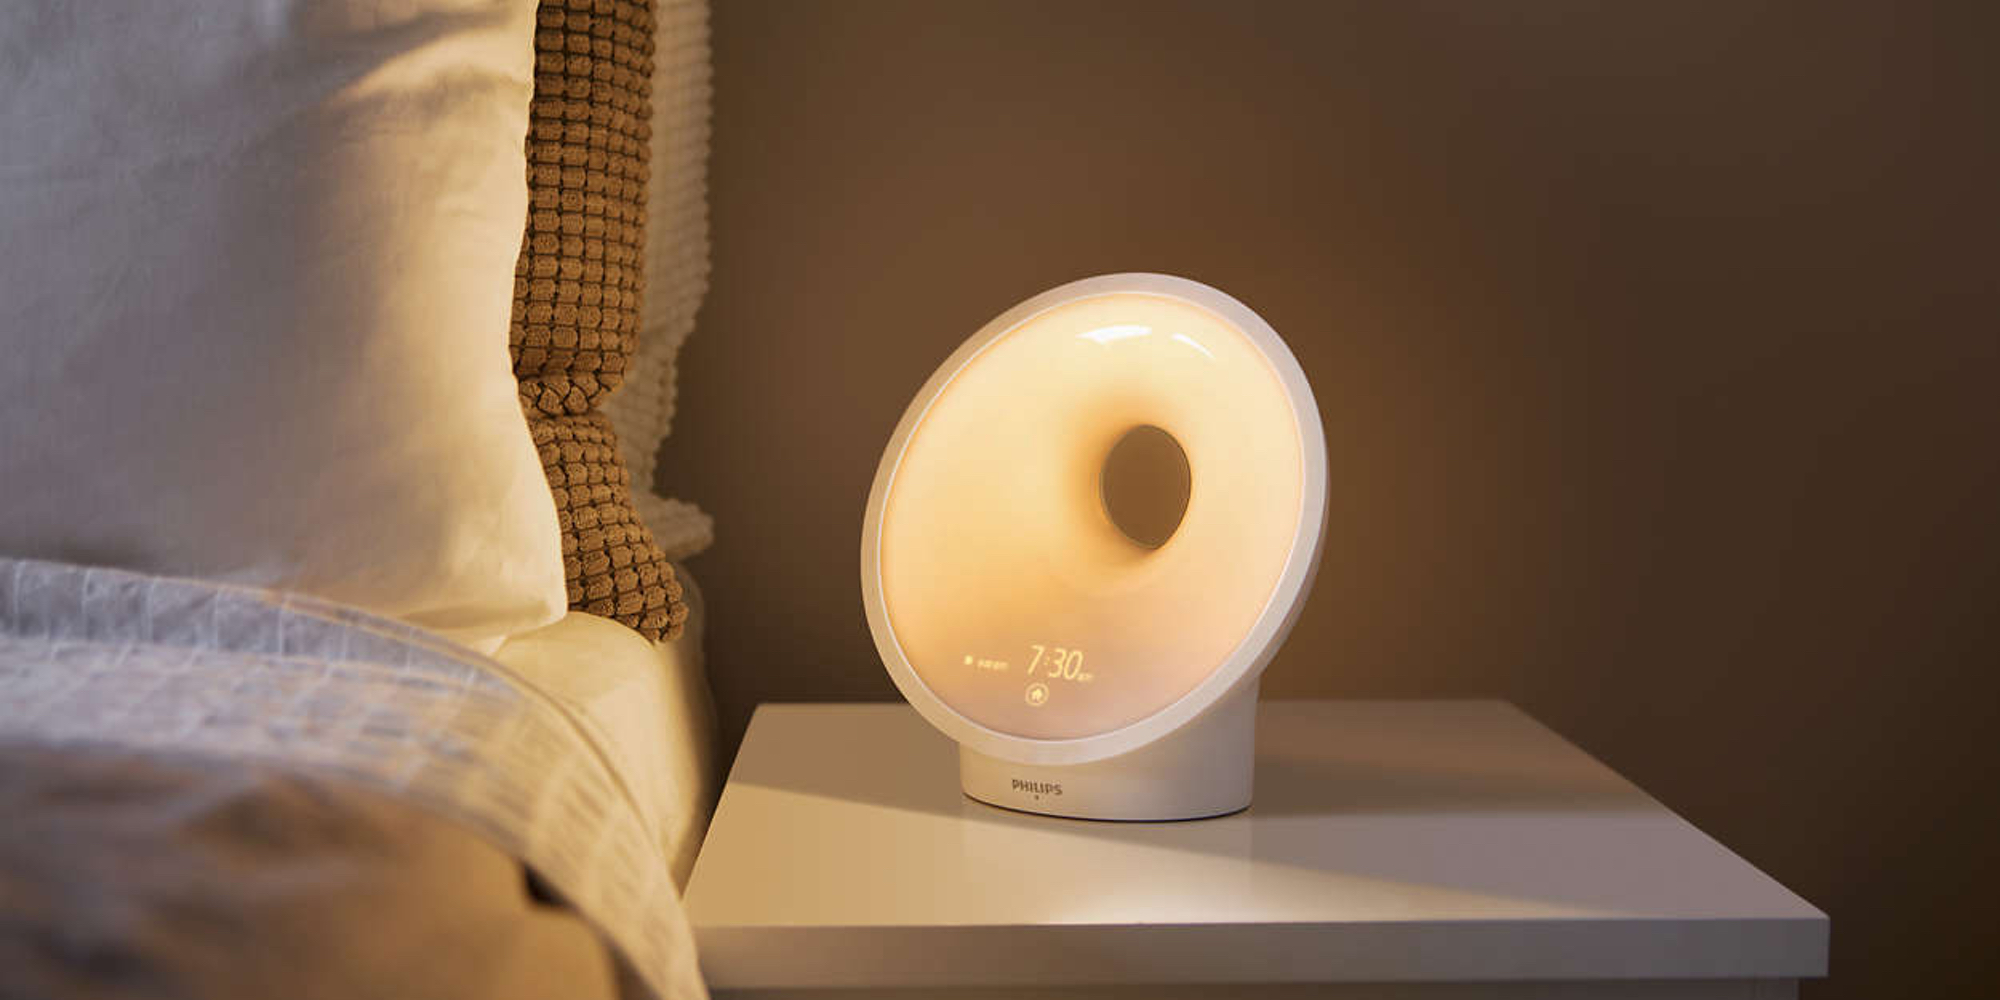 Get a better night's rest w/ the Philips Somneo Sleep Therapy Light for $160 (20% off)